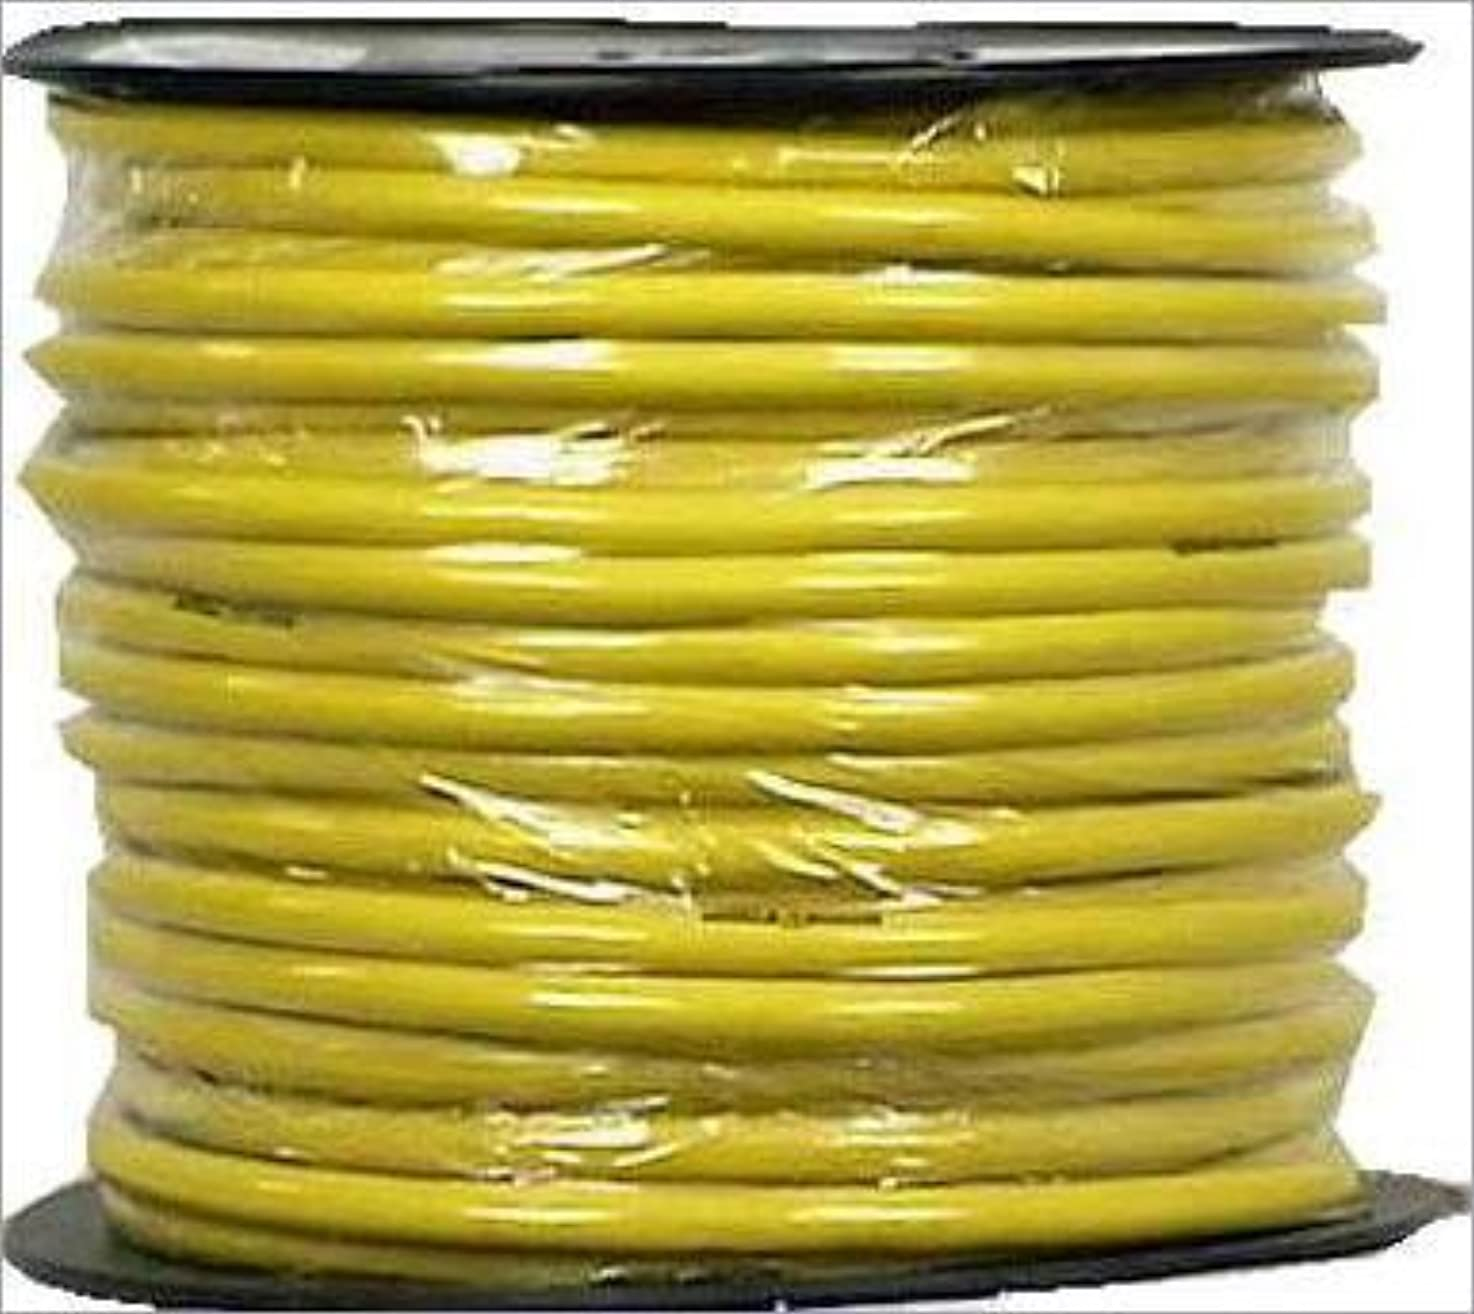 Woods 2808 SJTW Yellow Jacket Service Cord, 14/3, 250-Foot